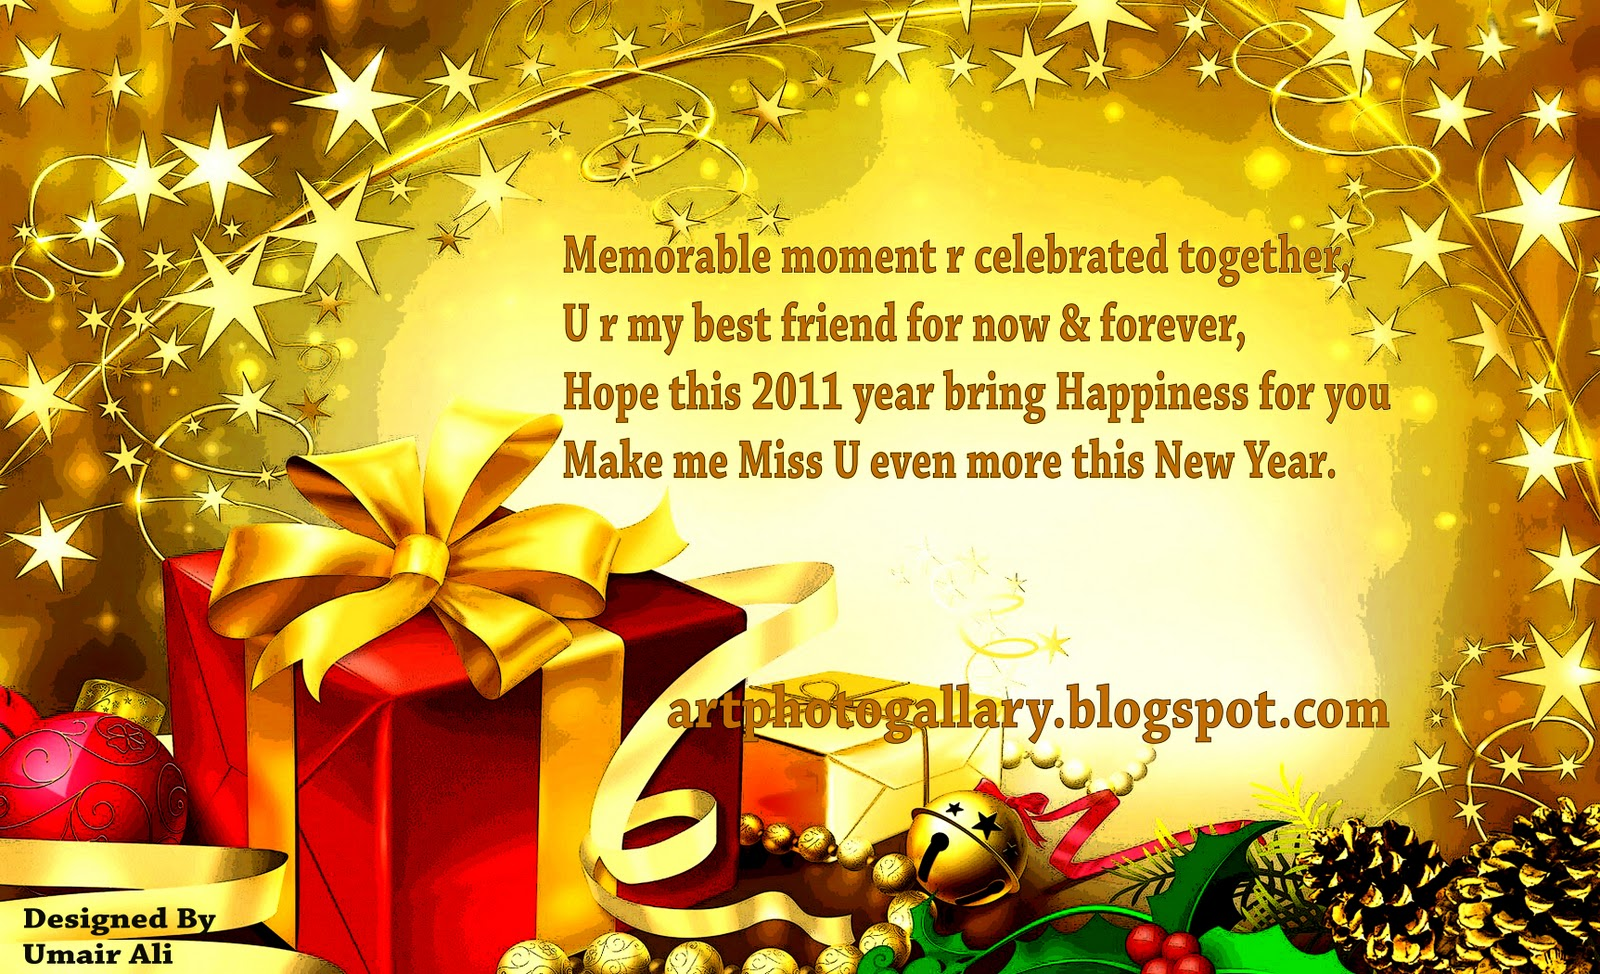 happynewyear2012greetingswallpaperspicturesimageswishes28www . 1600 x 974.Greeting For New Year In Hindi